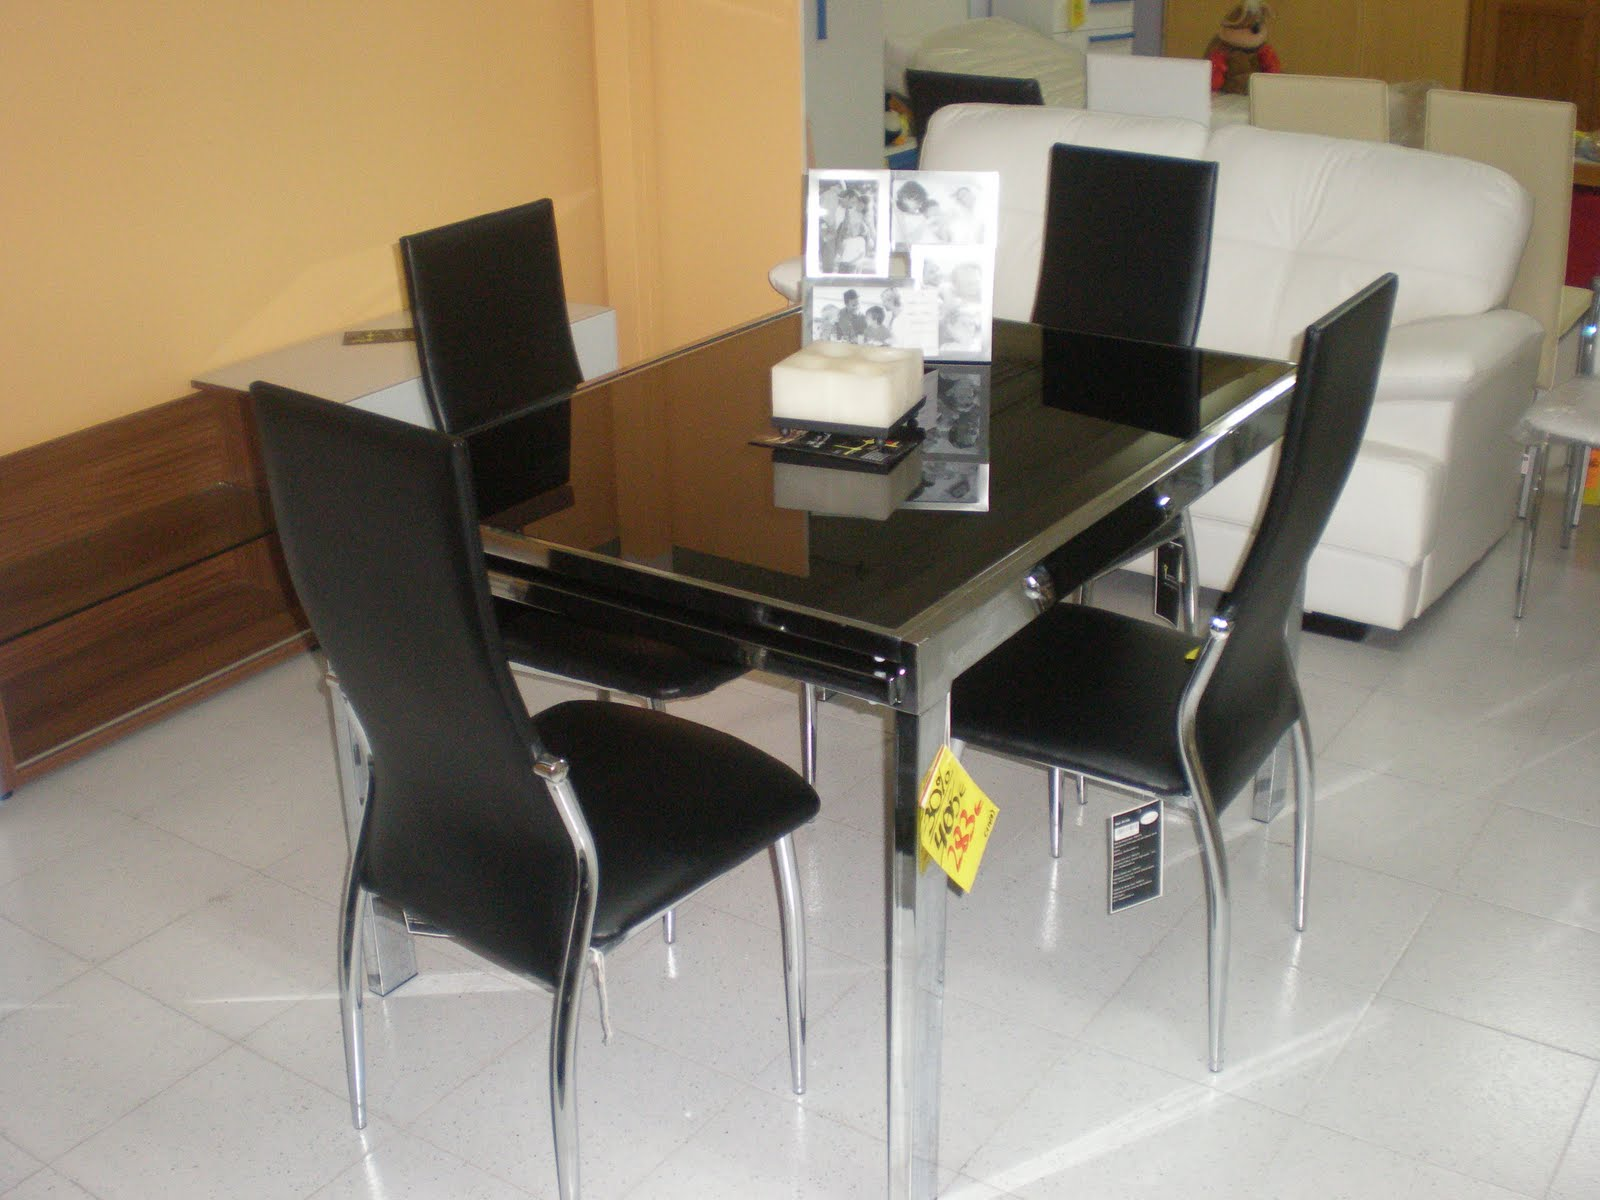 Muebles Domingo Muebles Domingo Bernal Mesa Comedor Ext Inox Cristal Negro